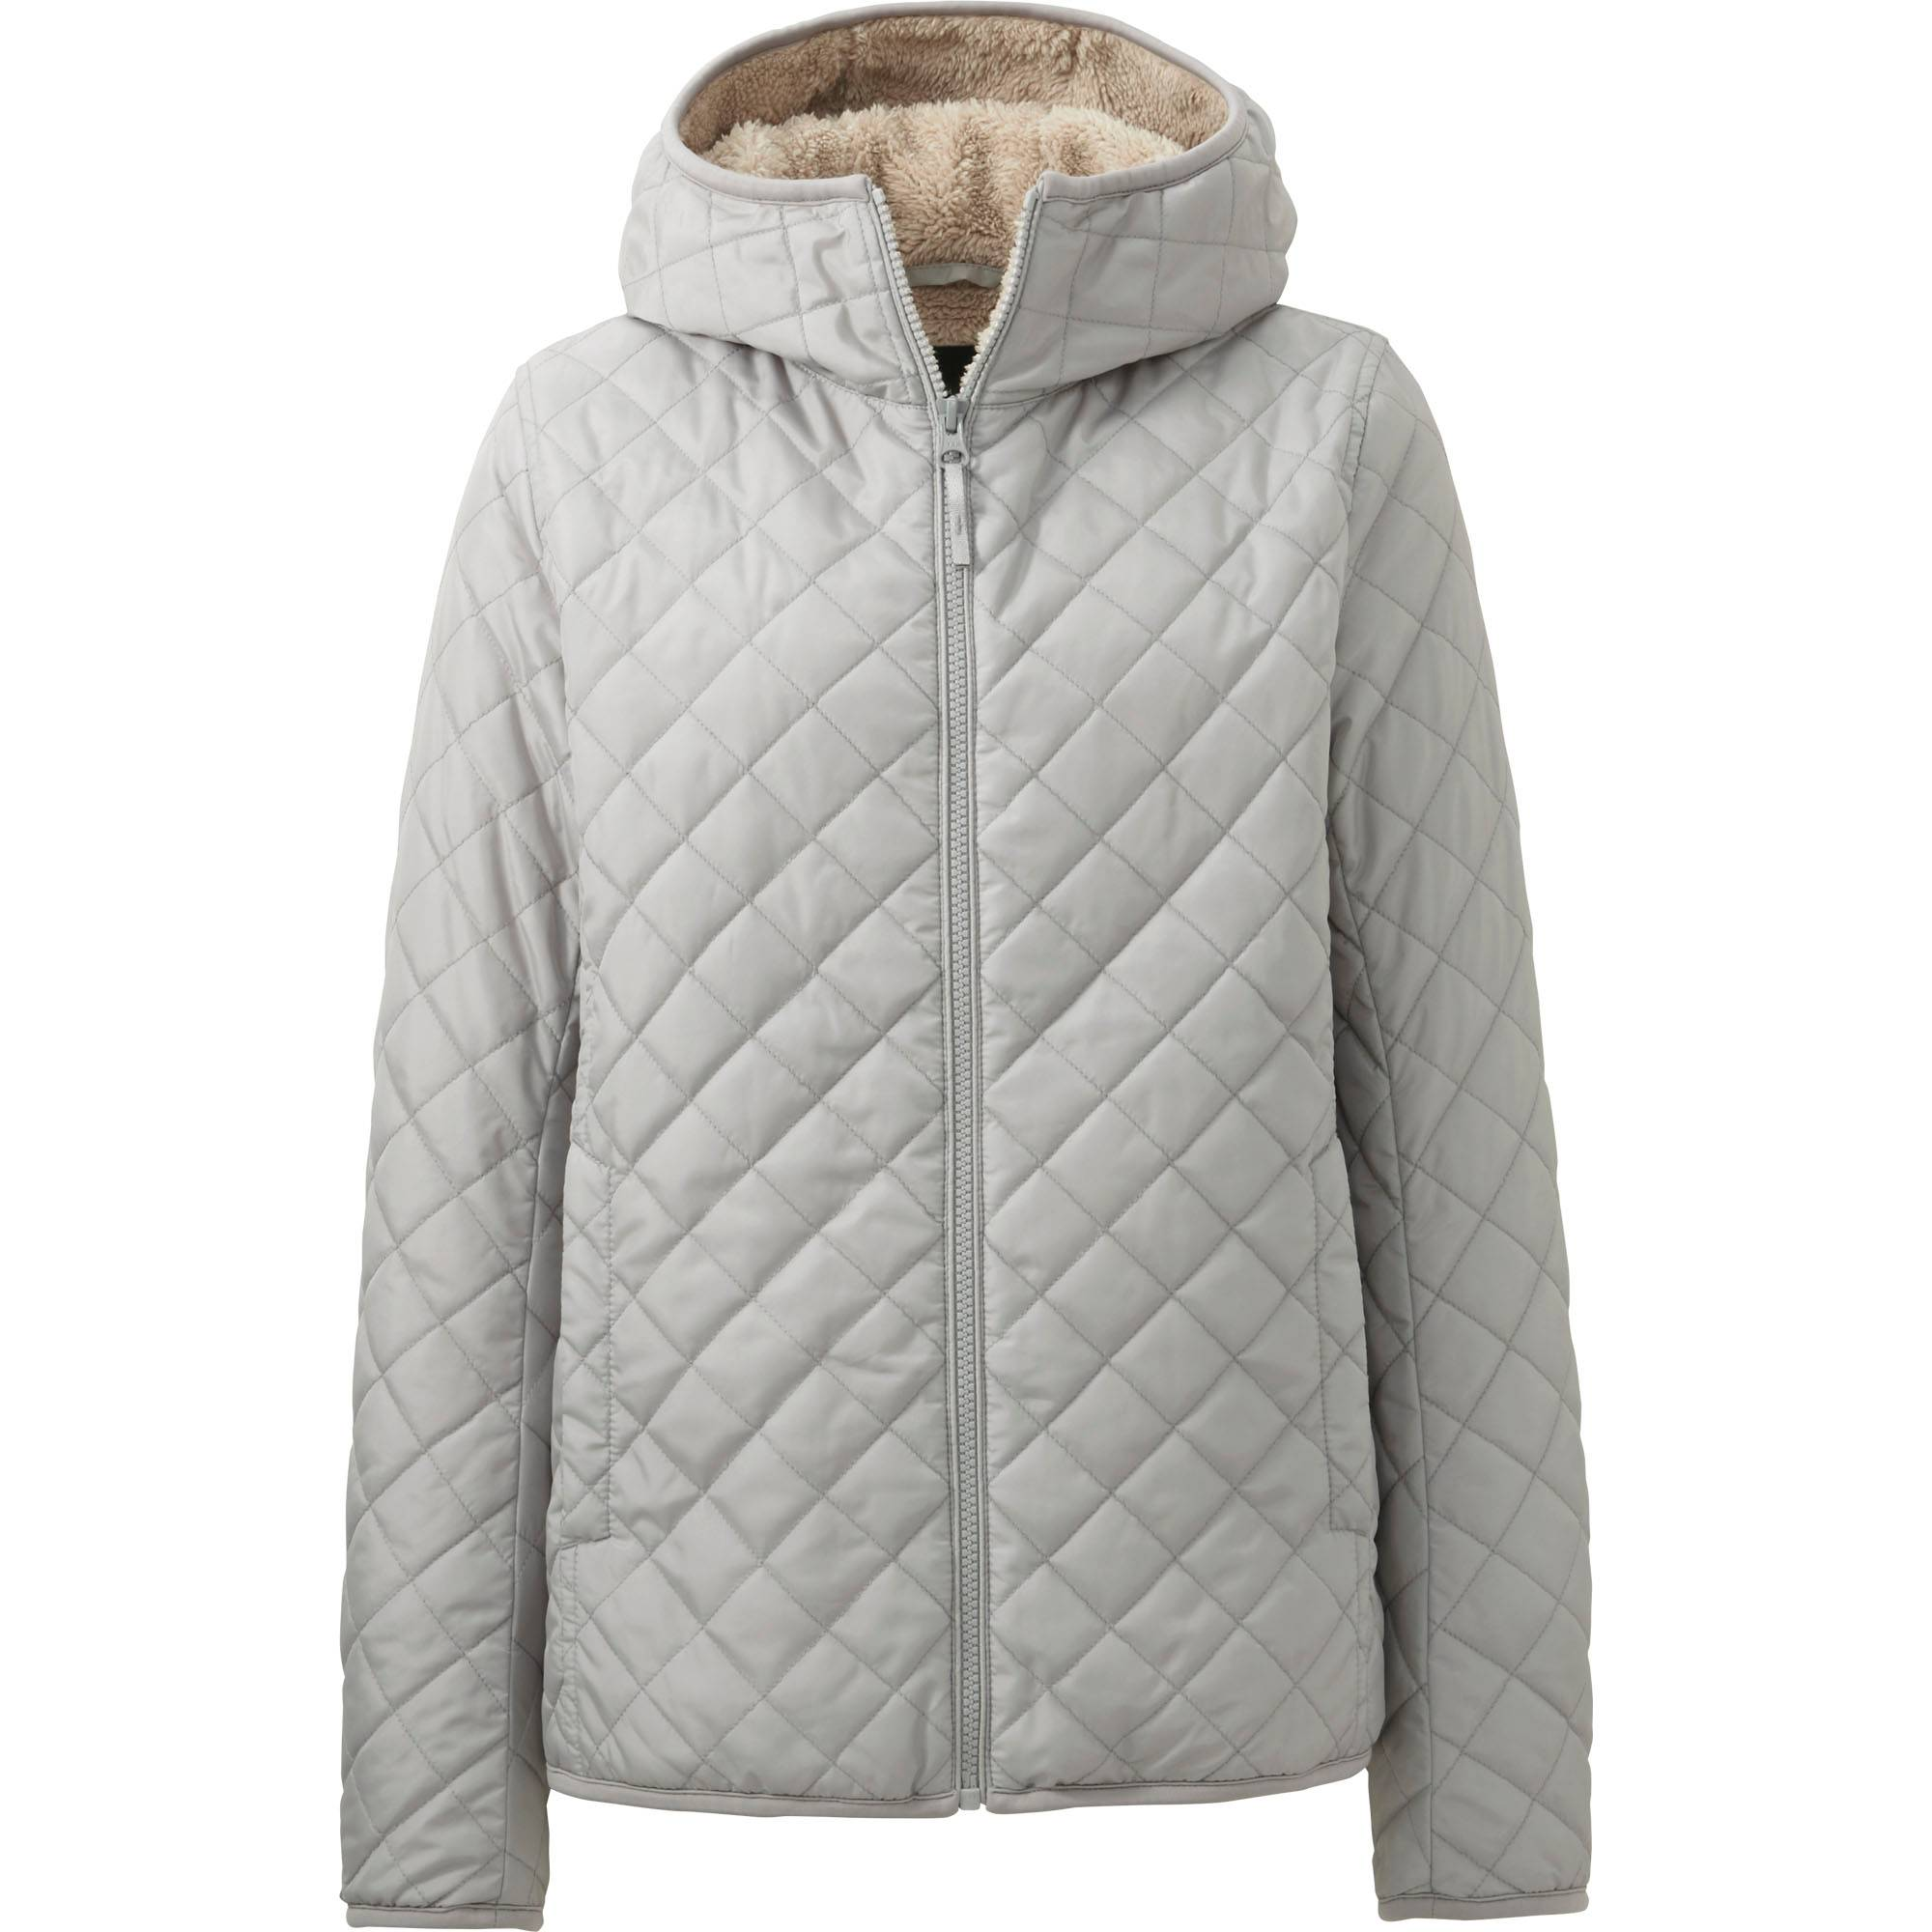 Fleece Parka Jackets Coat Nj